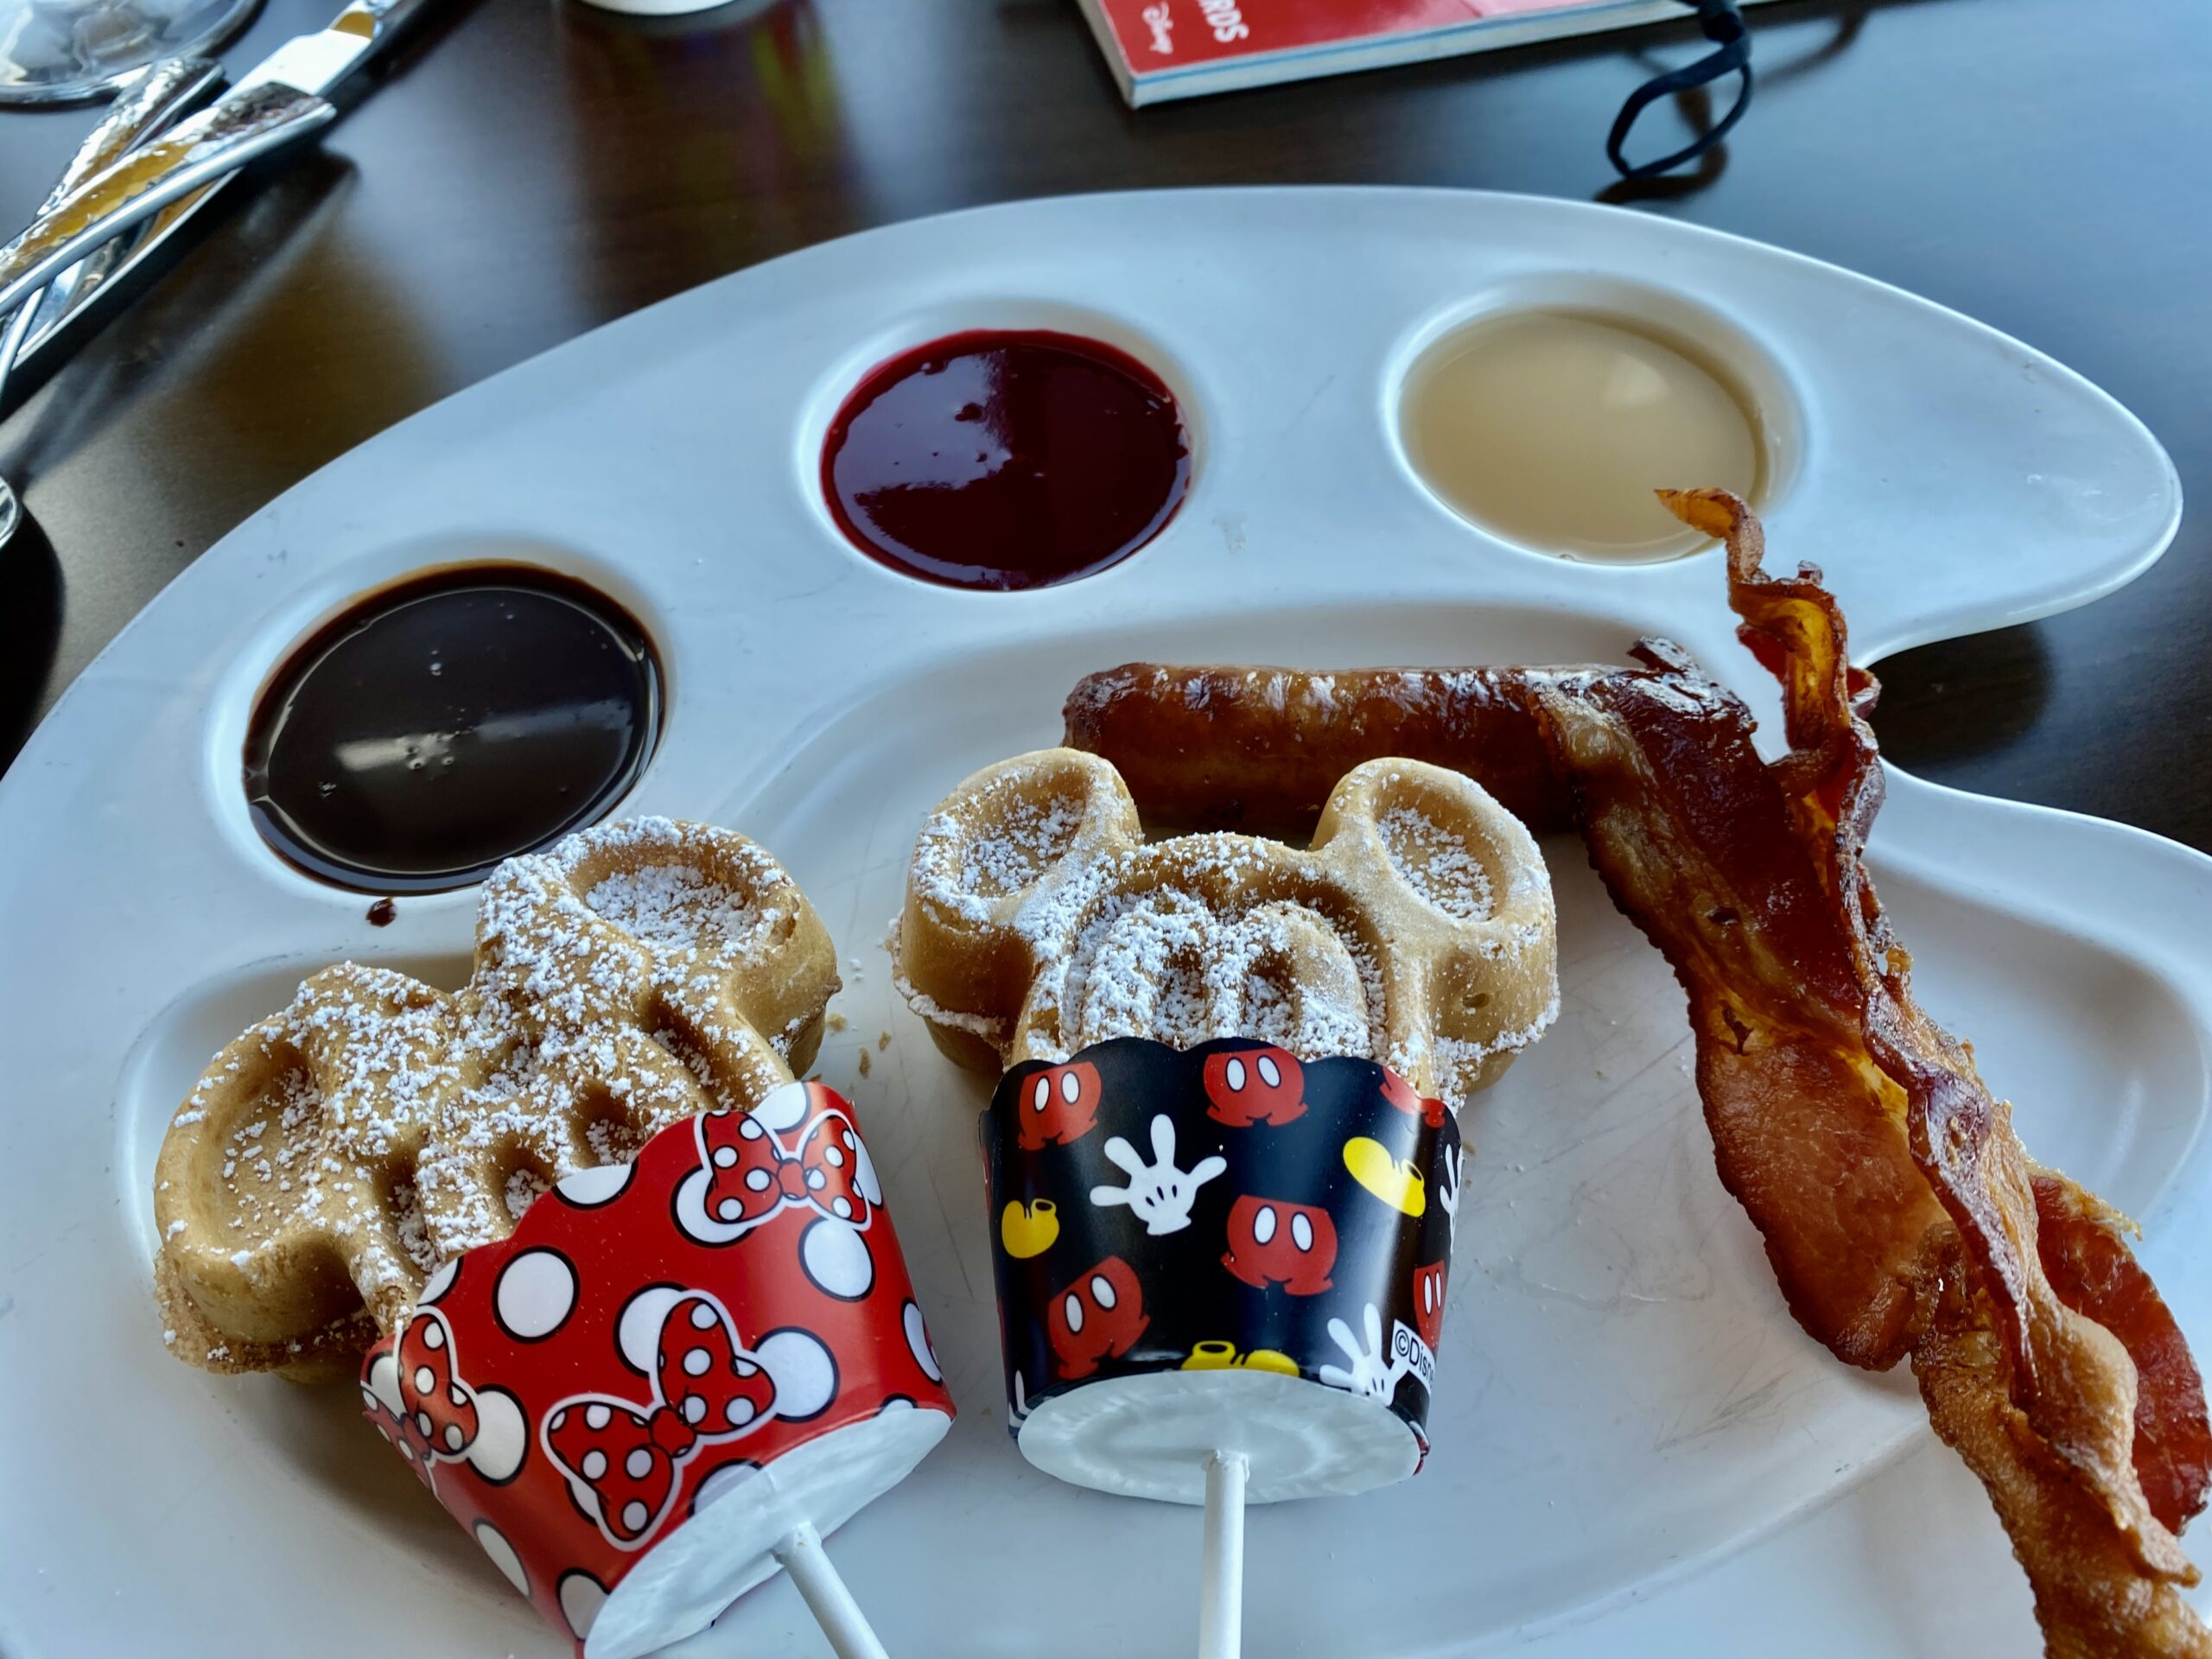 Mickey and Minnie waffles for breakfast